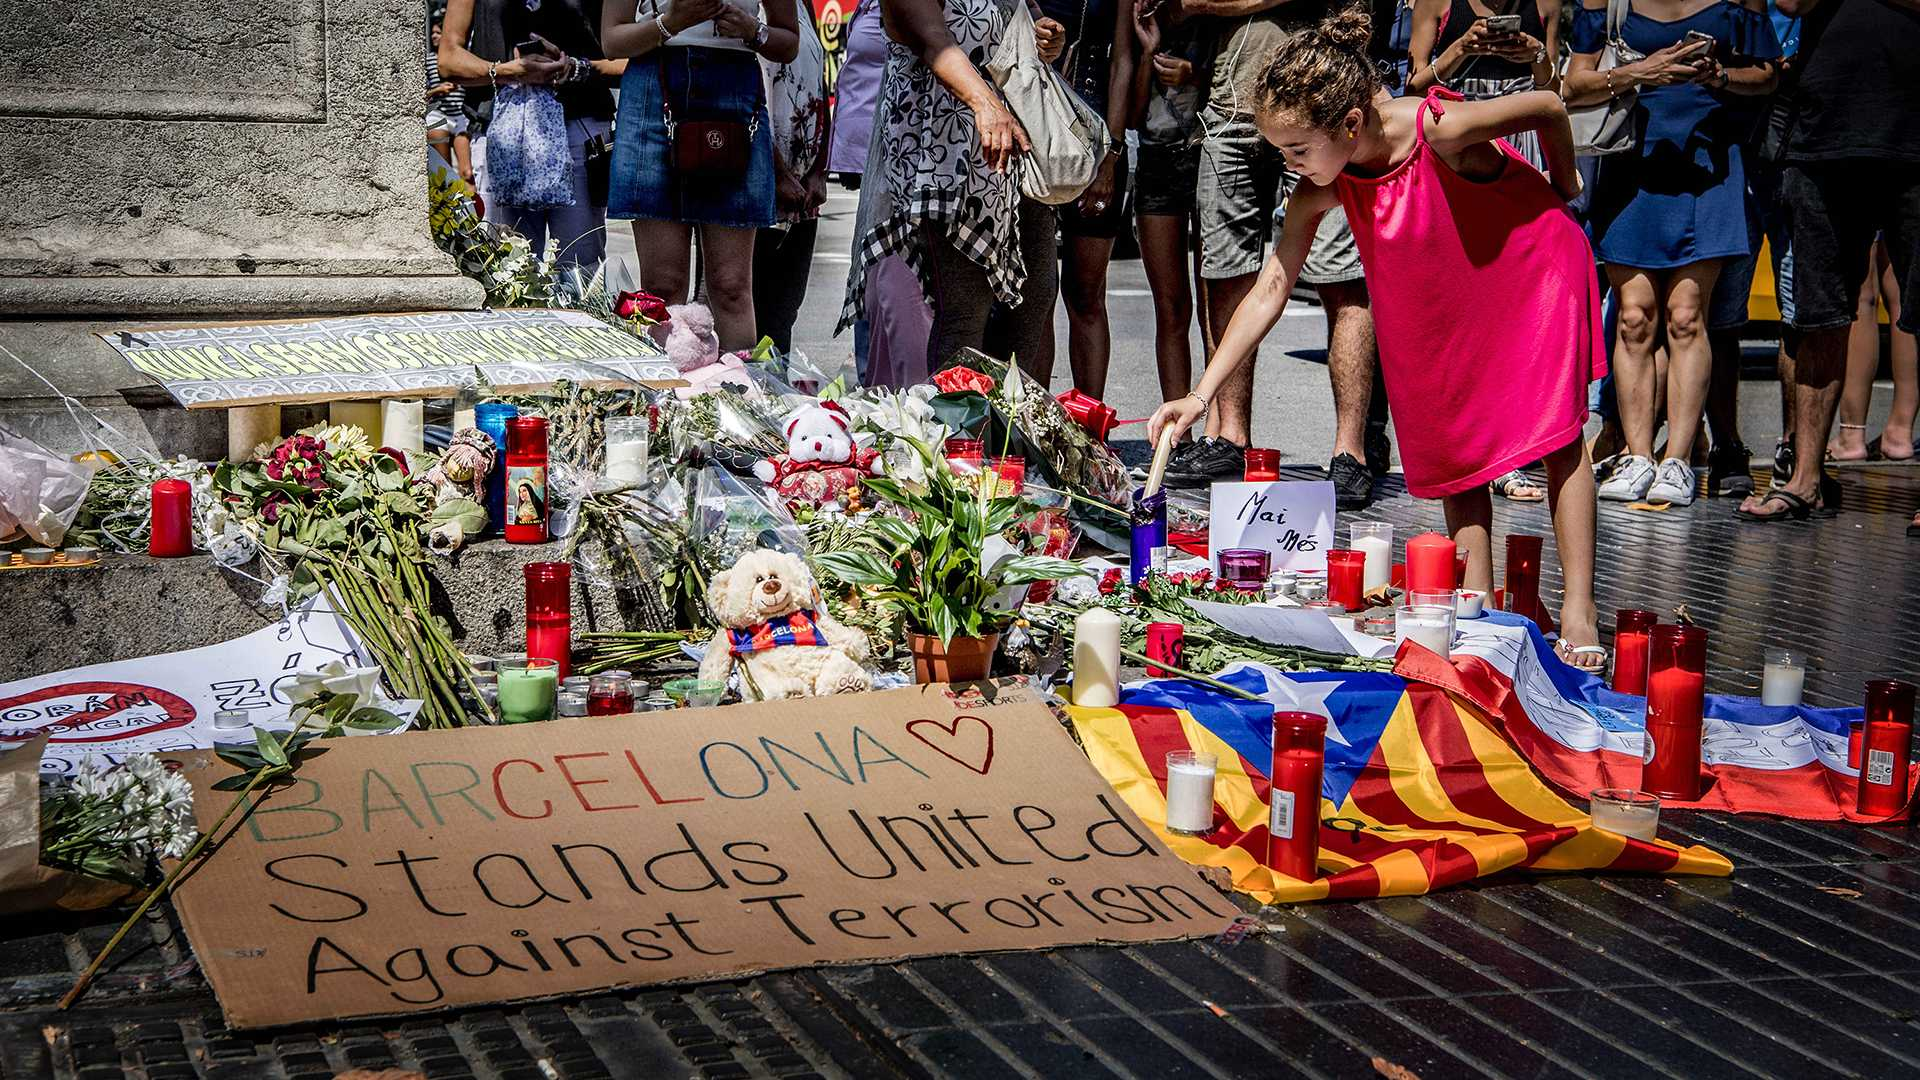 Flowers, messages and candles placed at a memorial Aug. 18, 2017 in Barcelona after the terrorist attack of The Rambla in Barcelona, Spain. The attack killed 14 and left more than 100 wounded. (Robin Utrecht/Abaca Press/TNS)